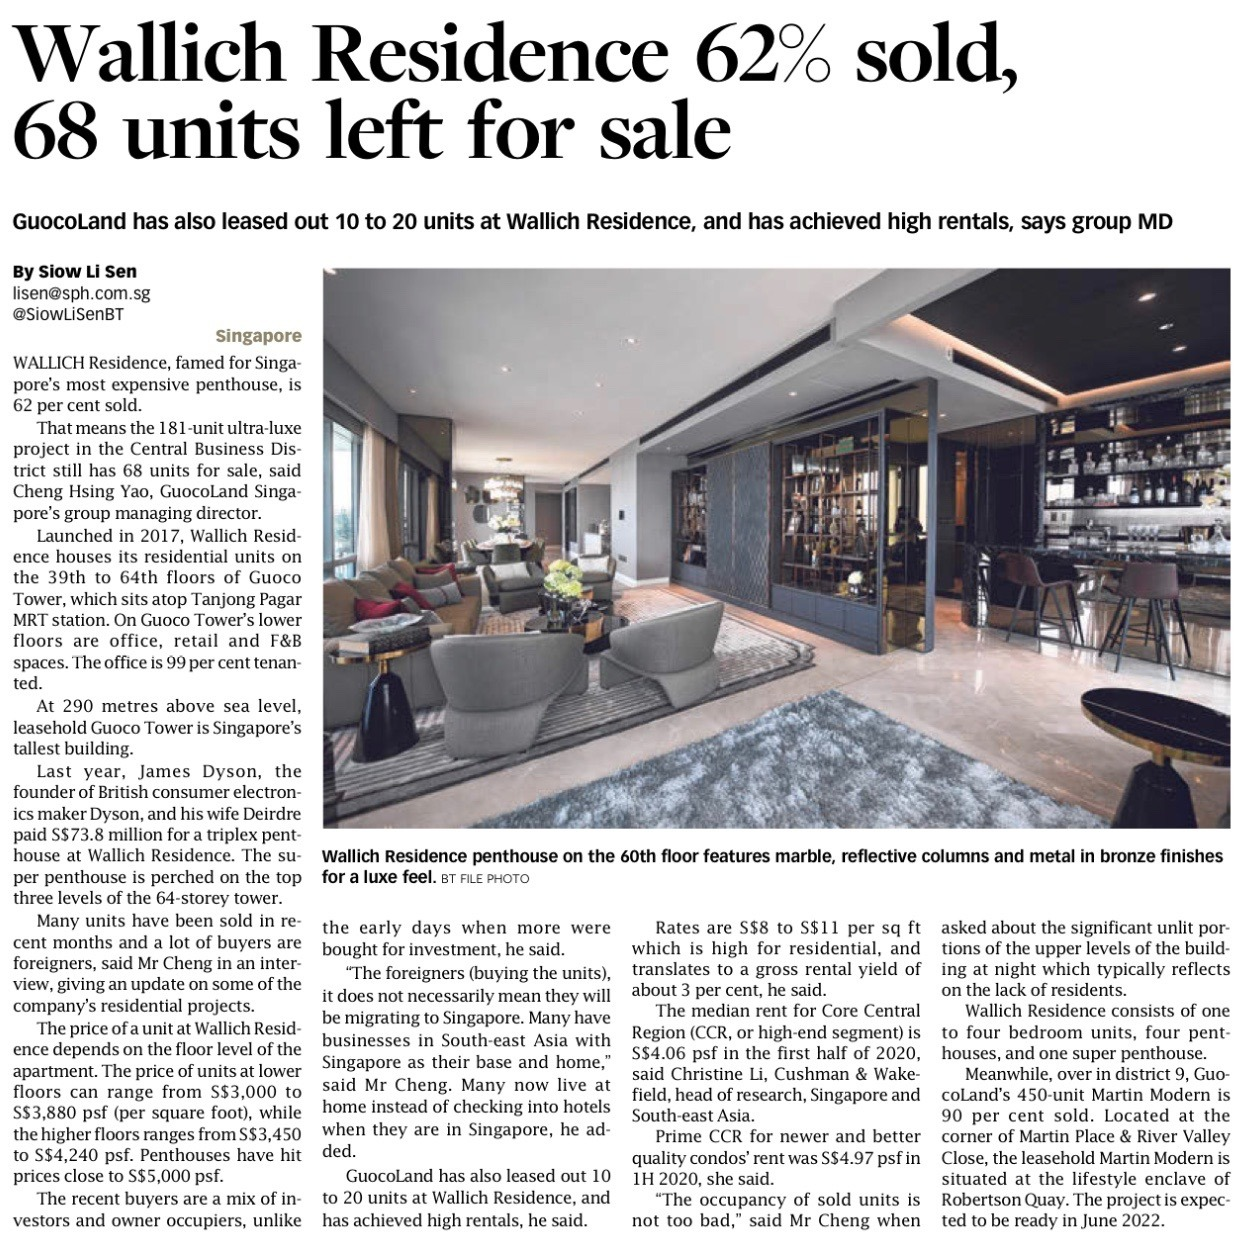 Wallich Residence News Article